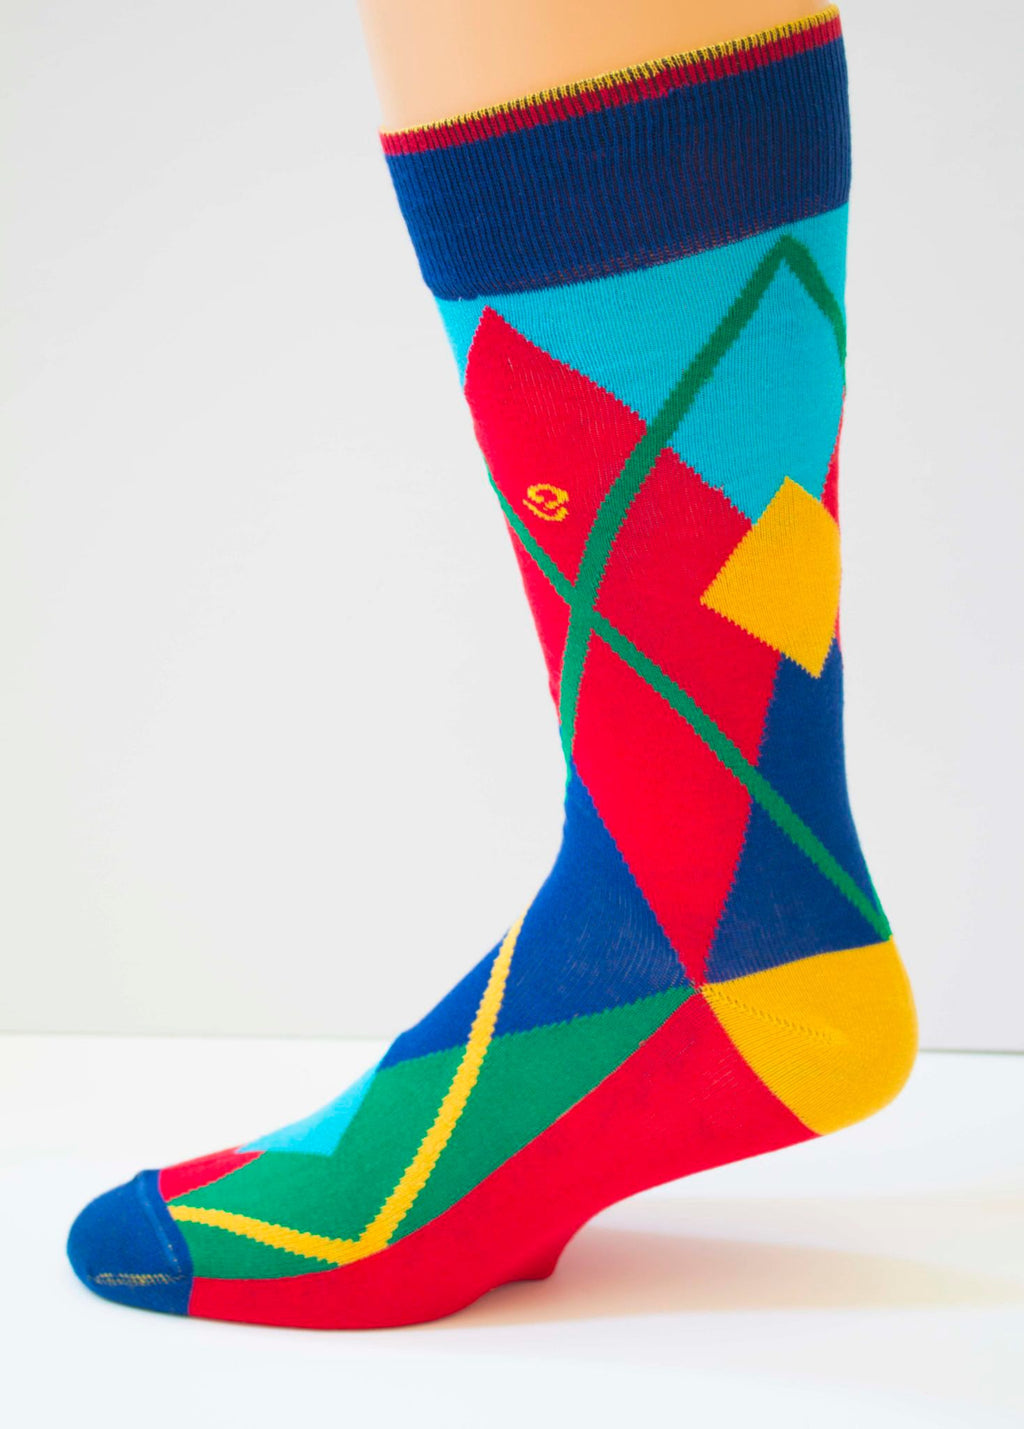 Comfort Zone Men's Socks